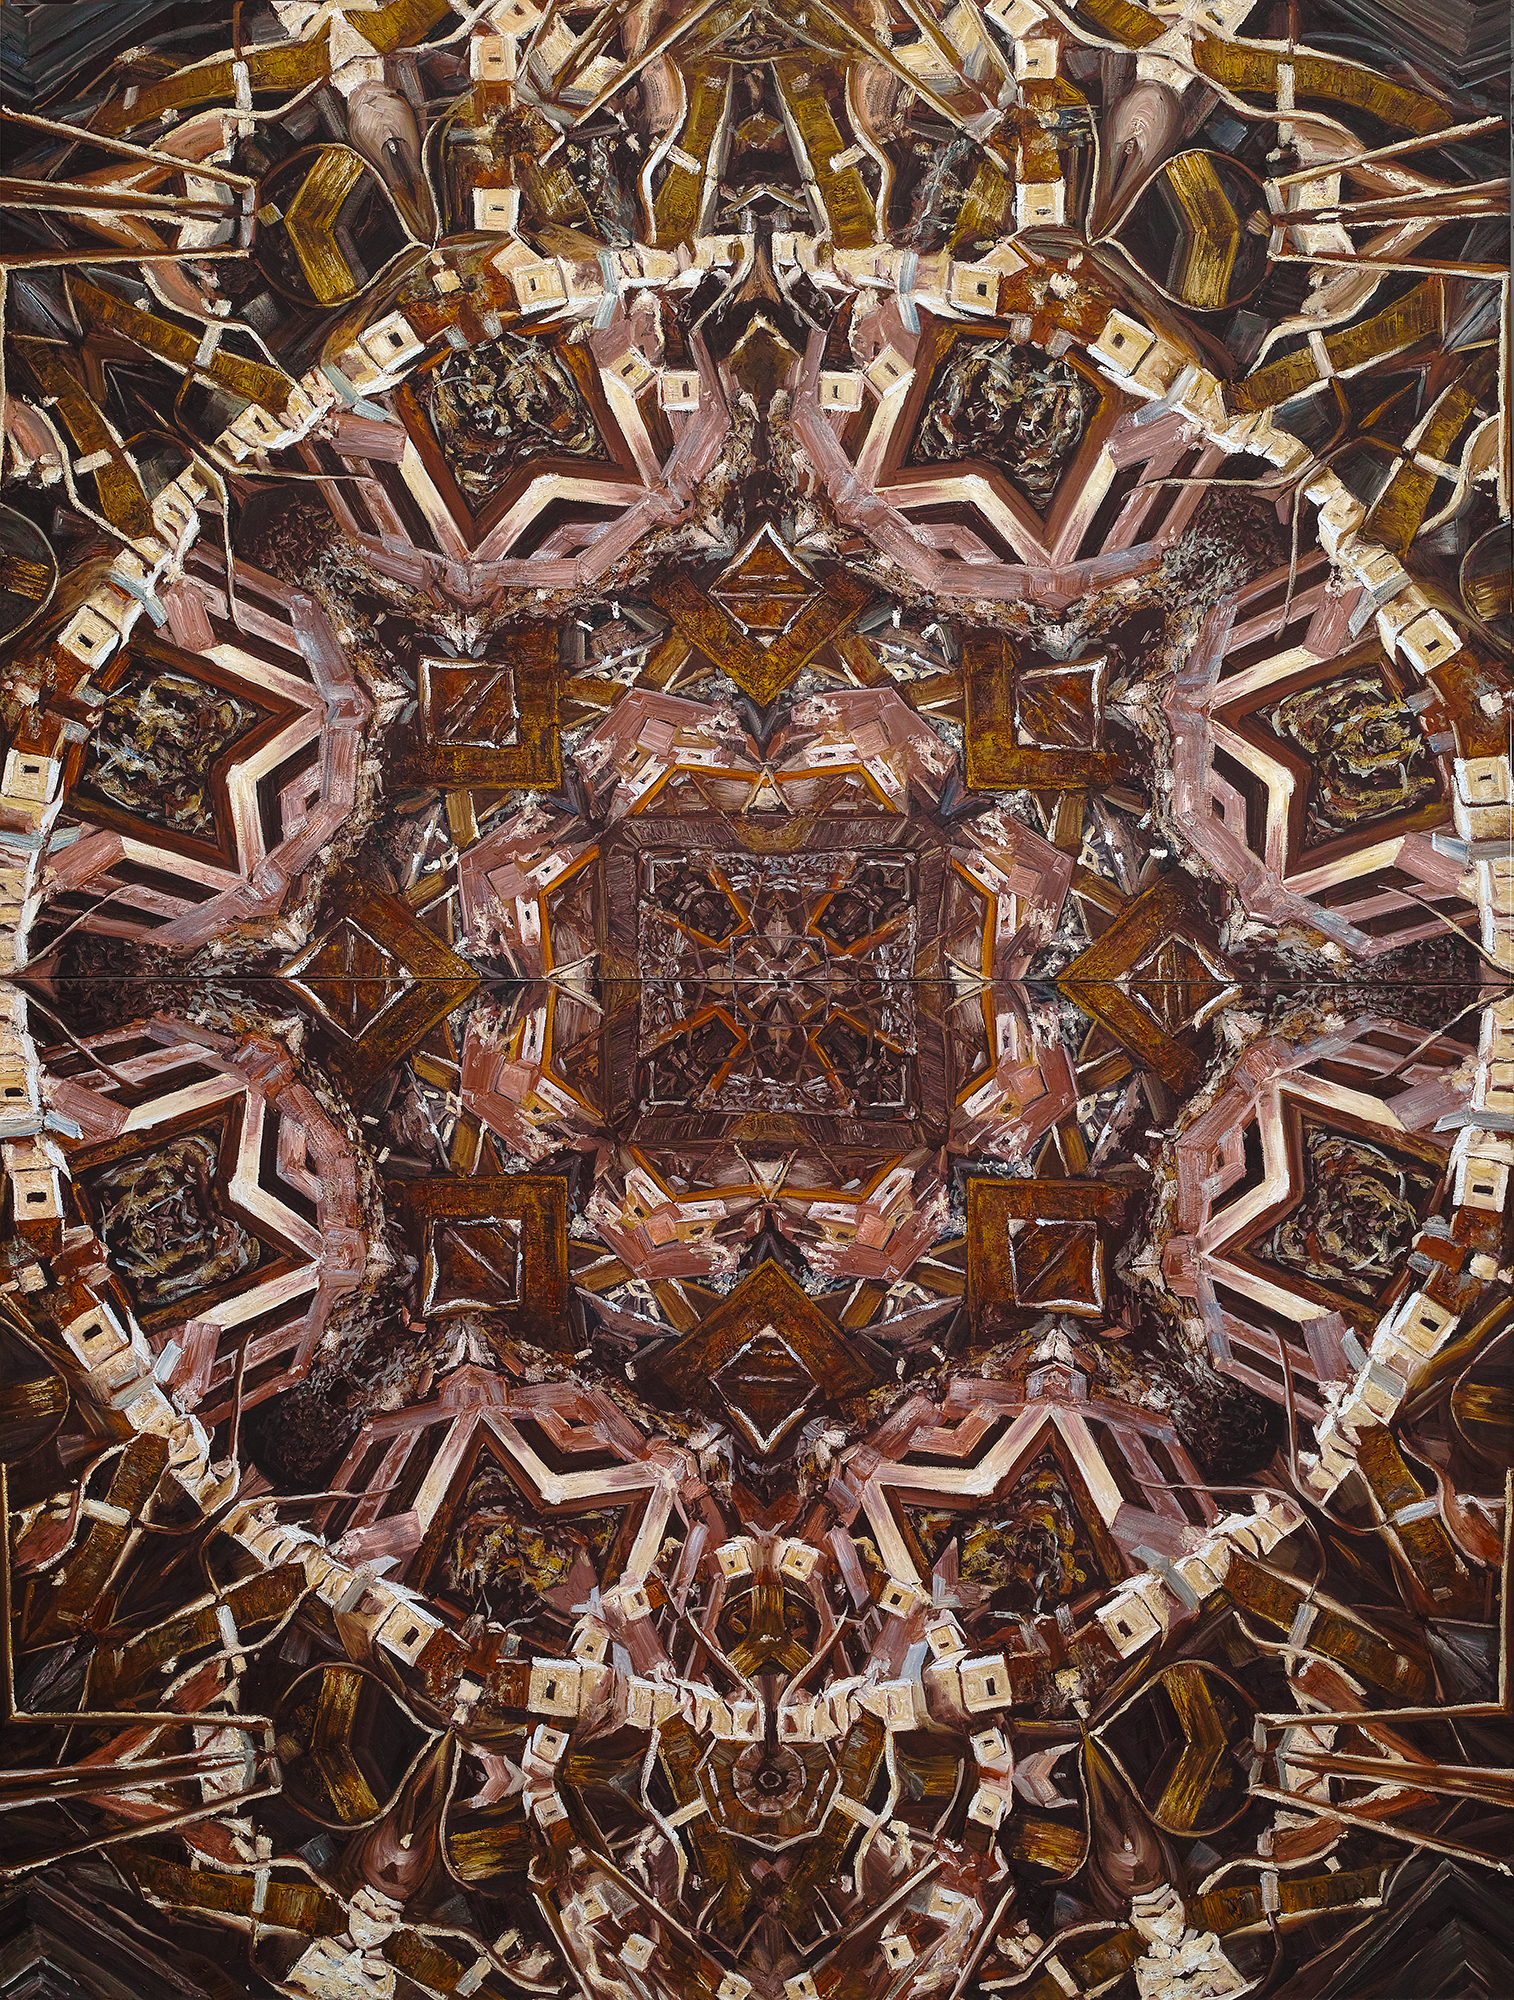 Caomin Xie,  Mandala # 12 , 2010, oil on canvas, 144 by 109 inches